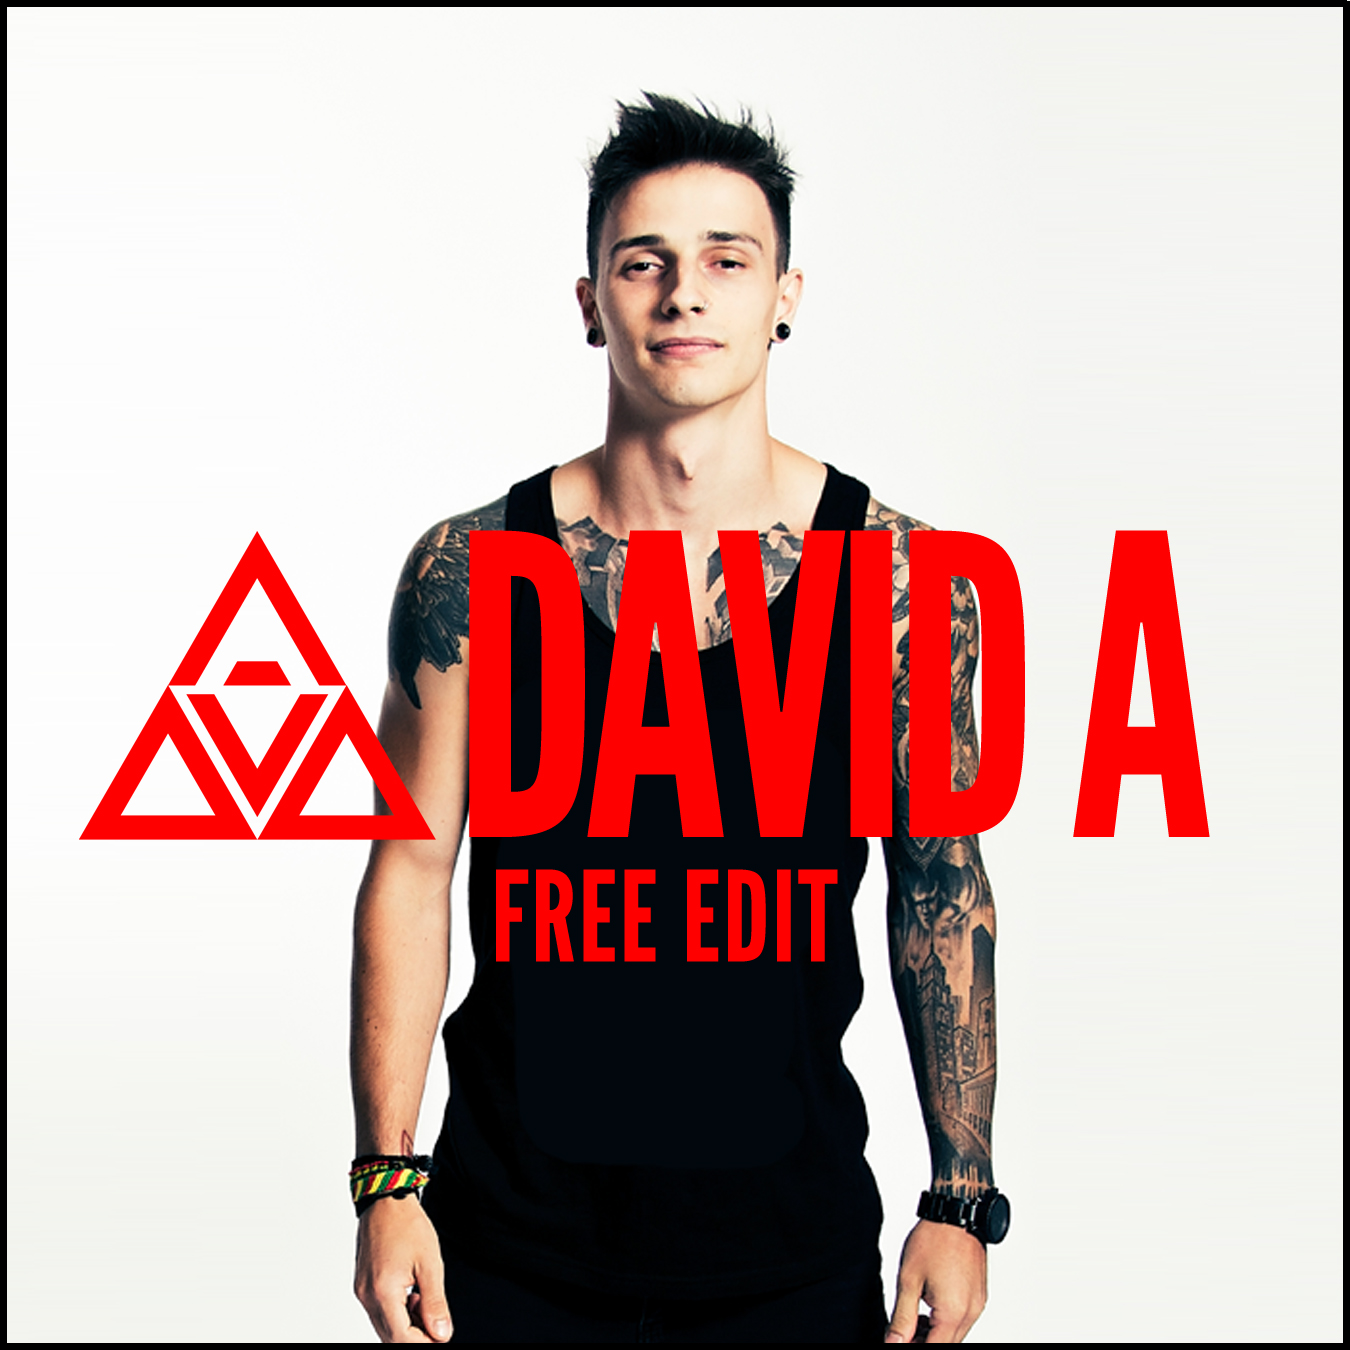 Space Hero - David A - Free Edit